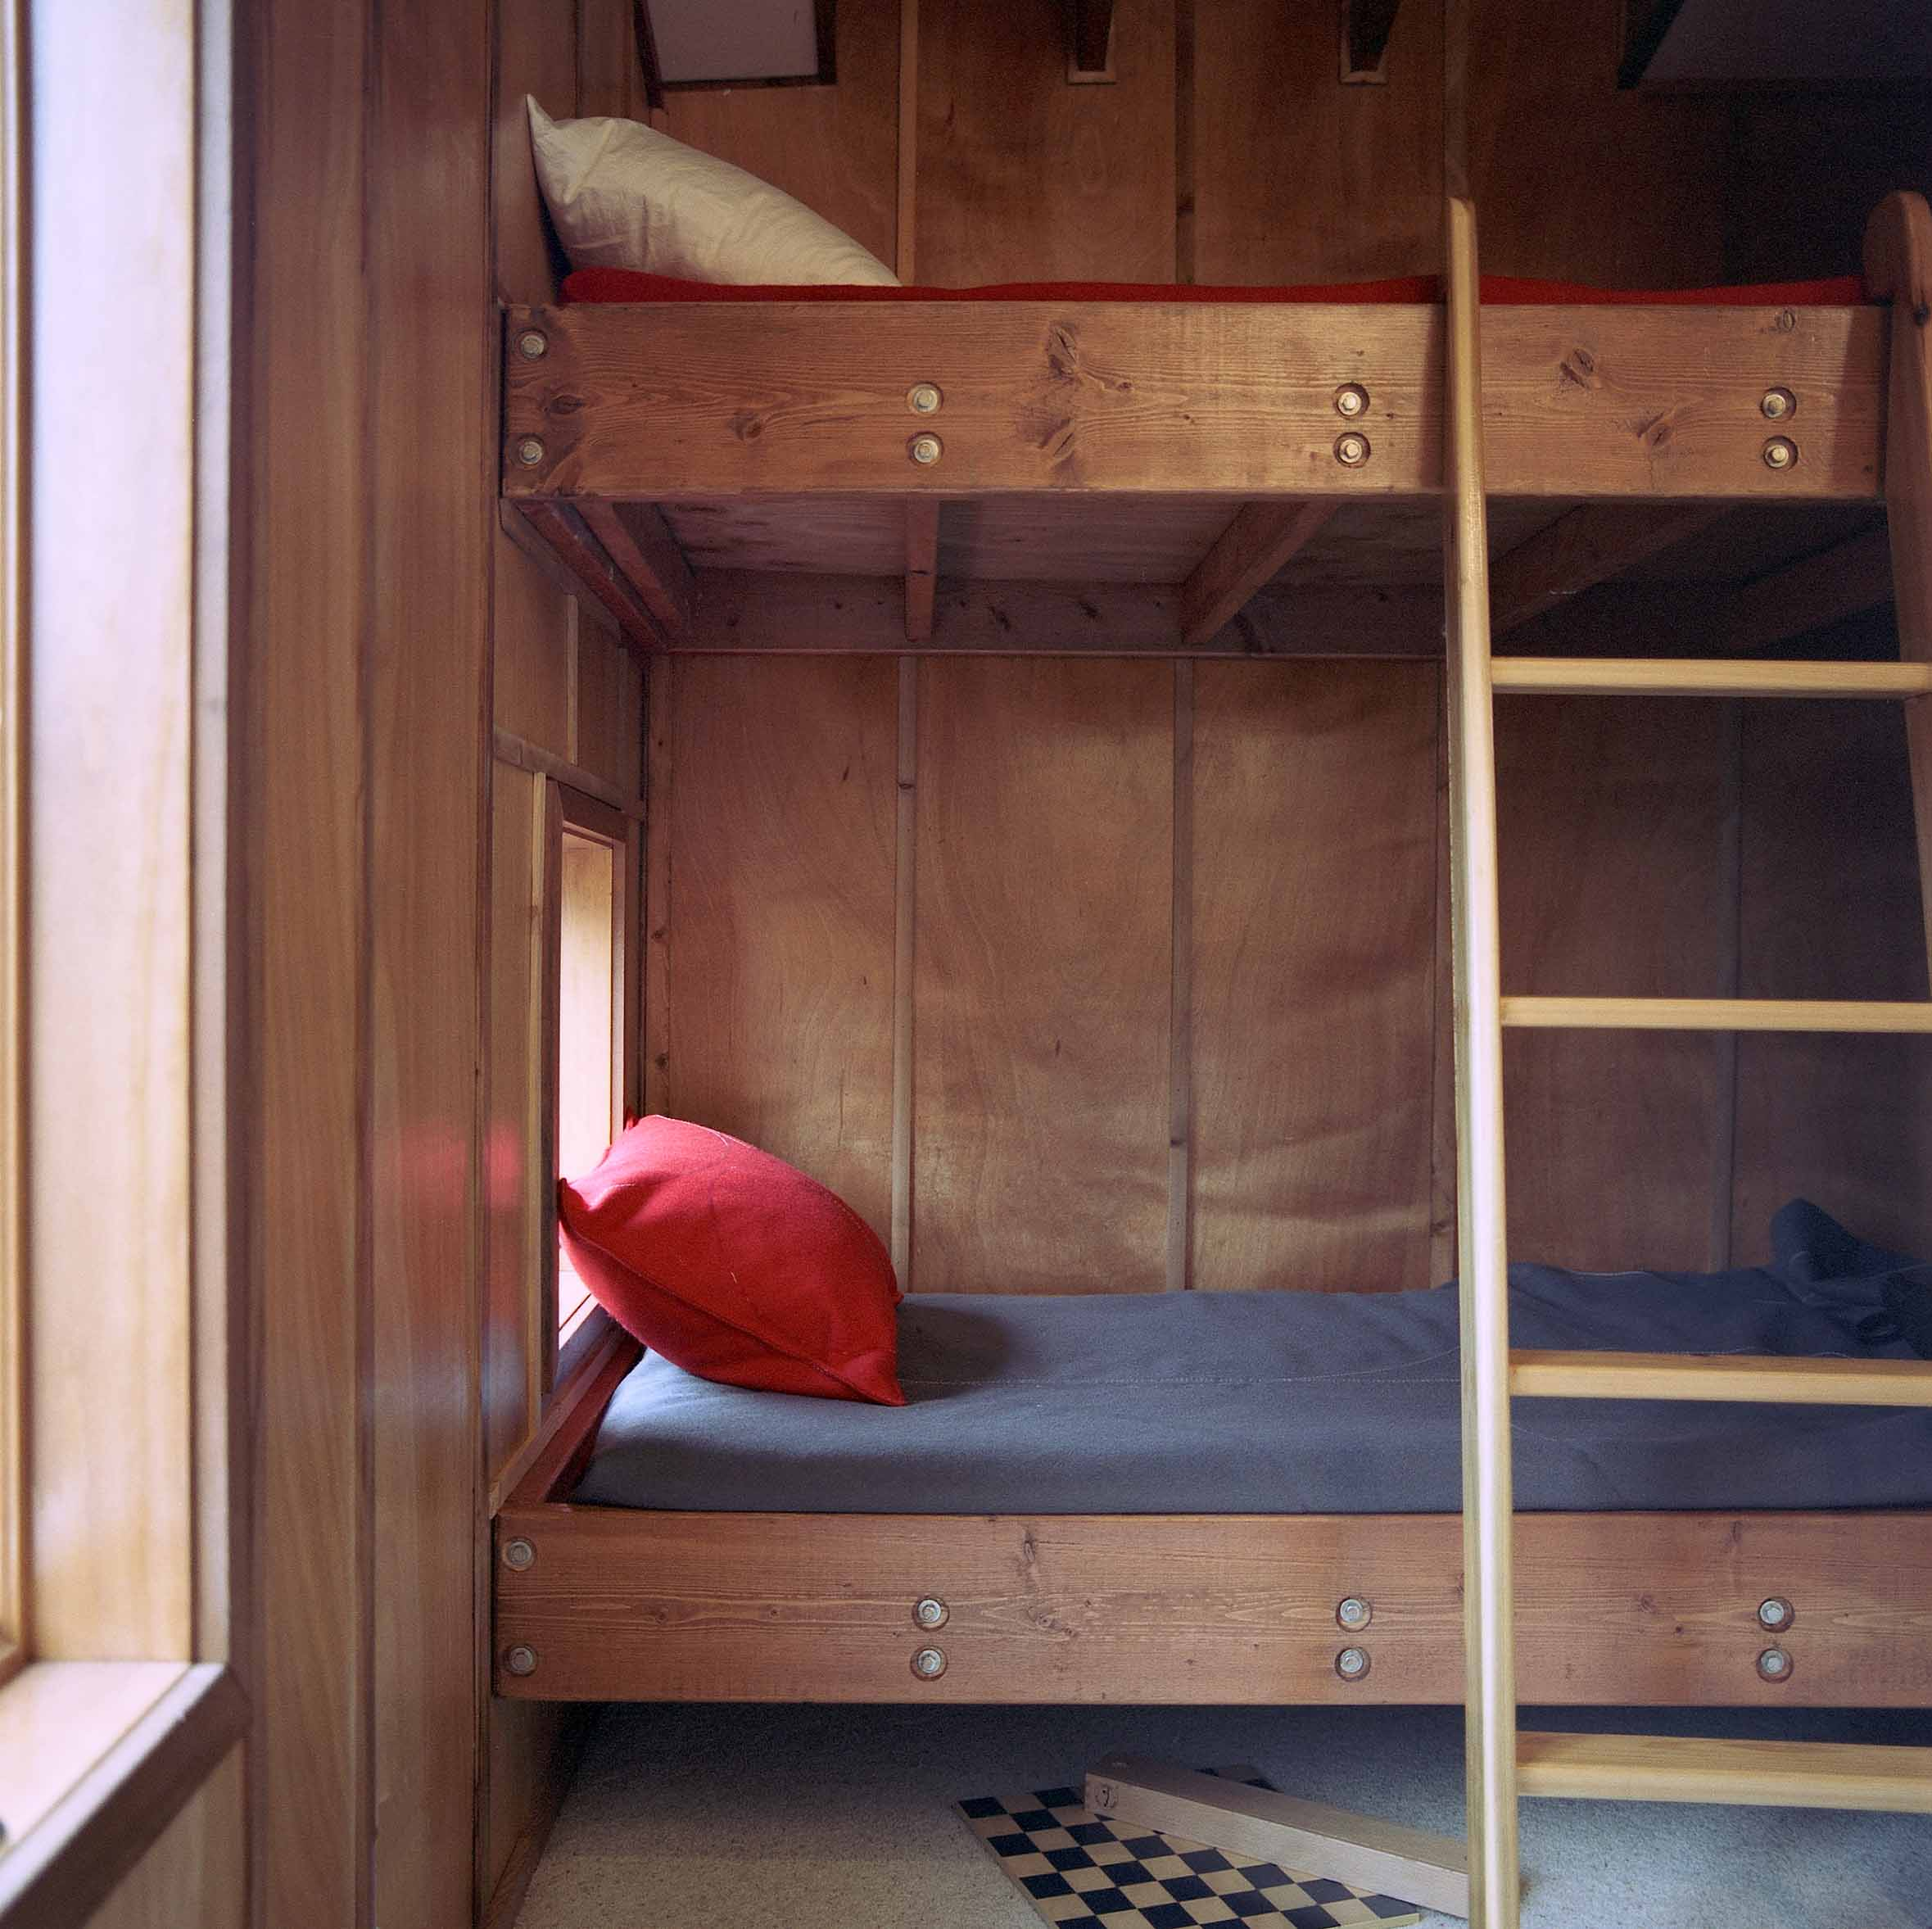 bunks close up.jpg